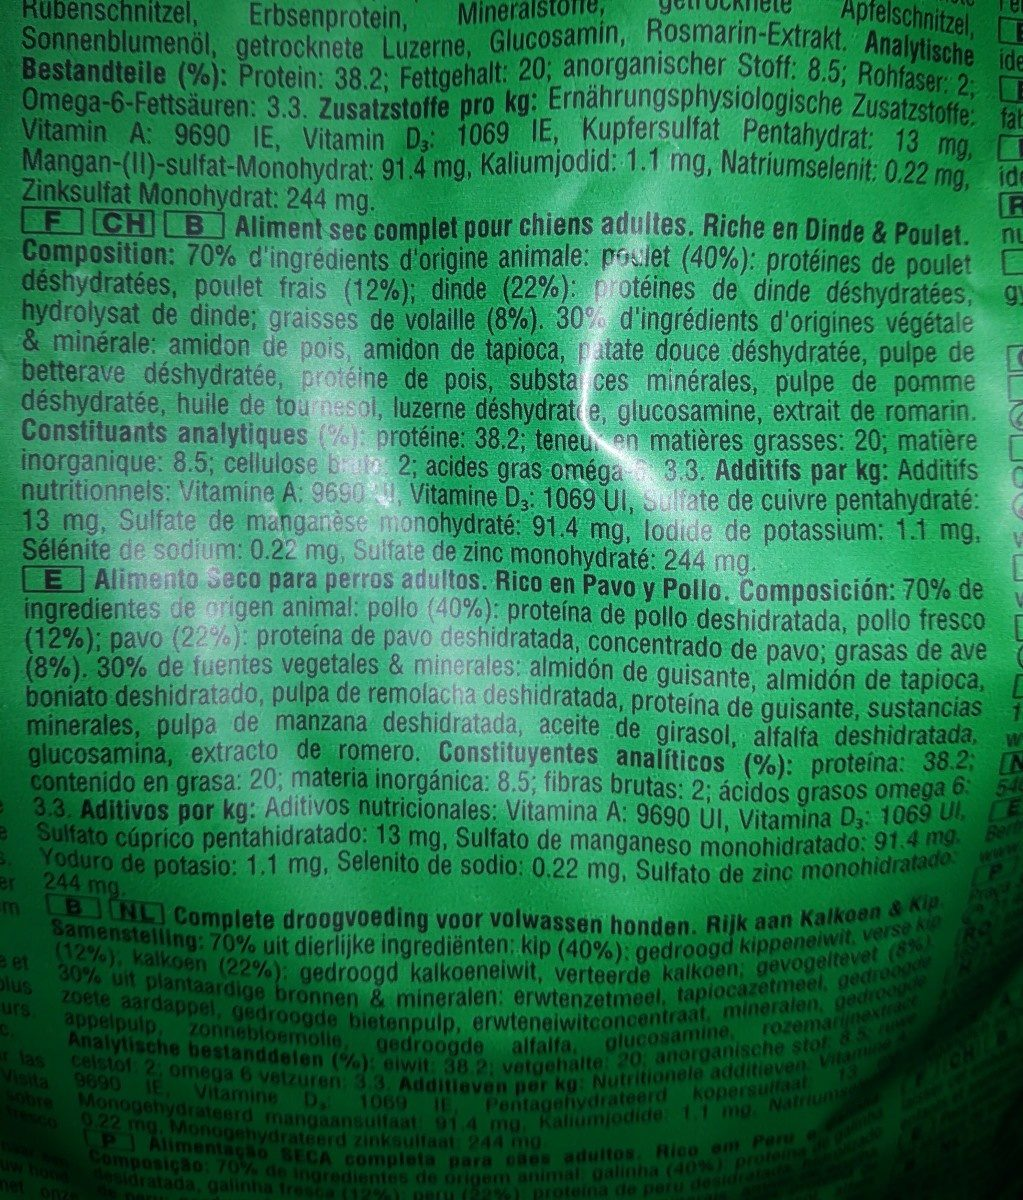 Nutro feed clean wild frontières - Ingredients - fr